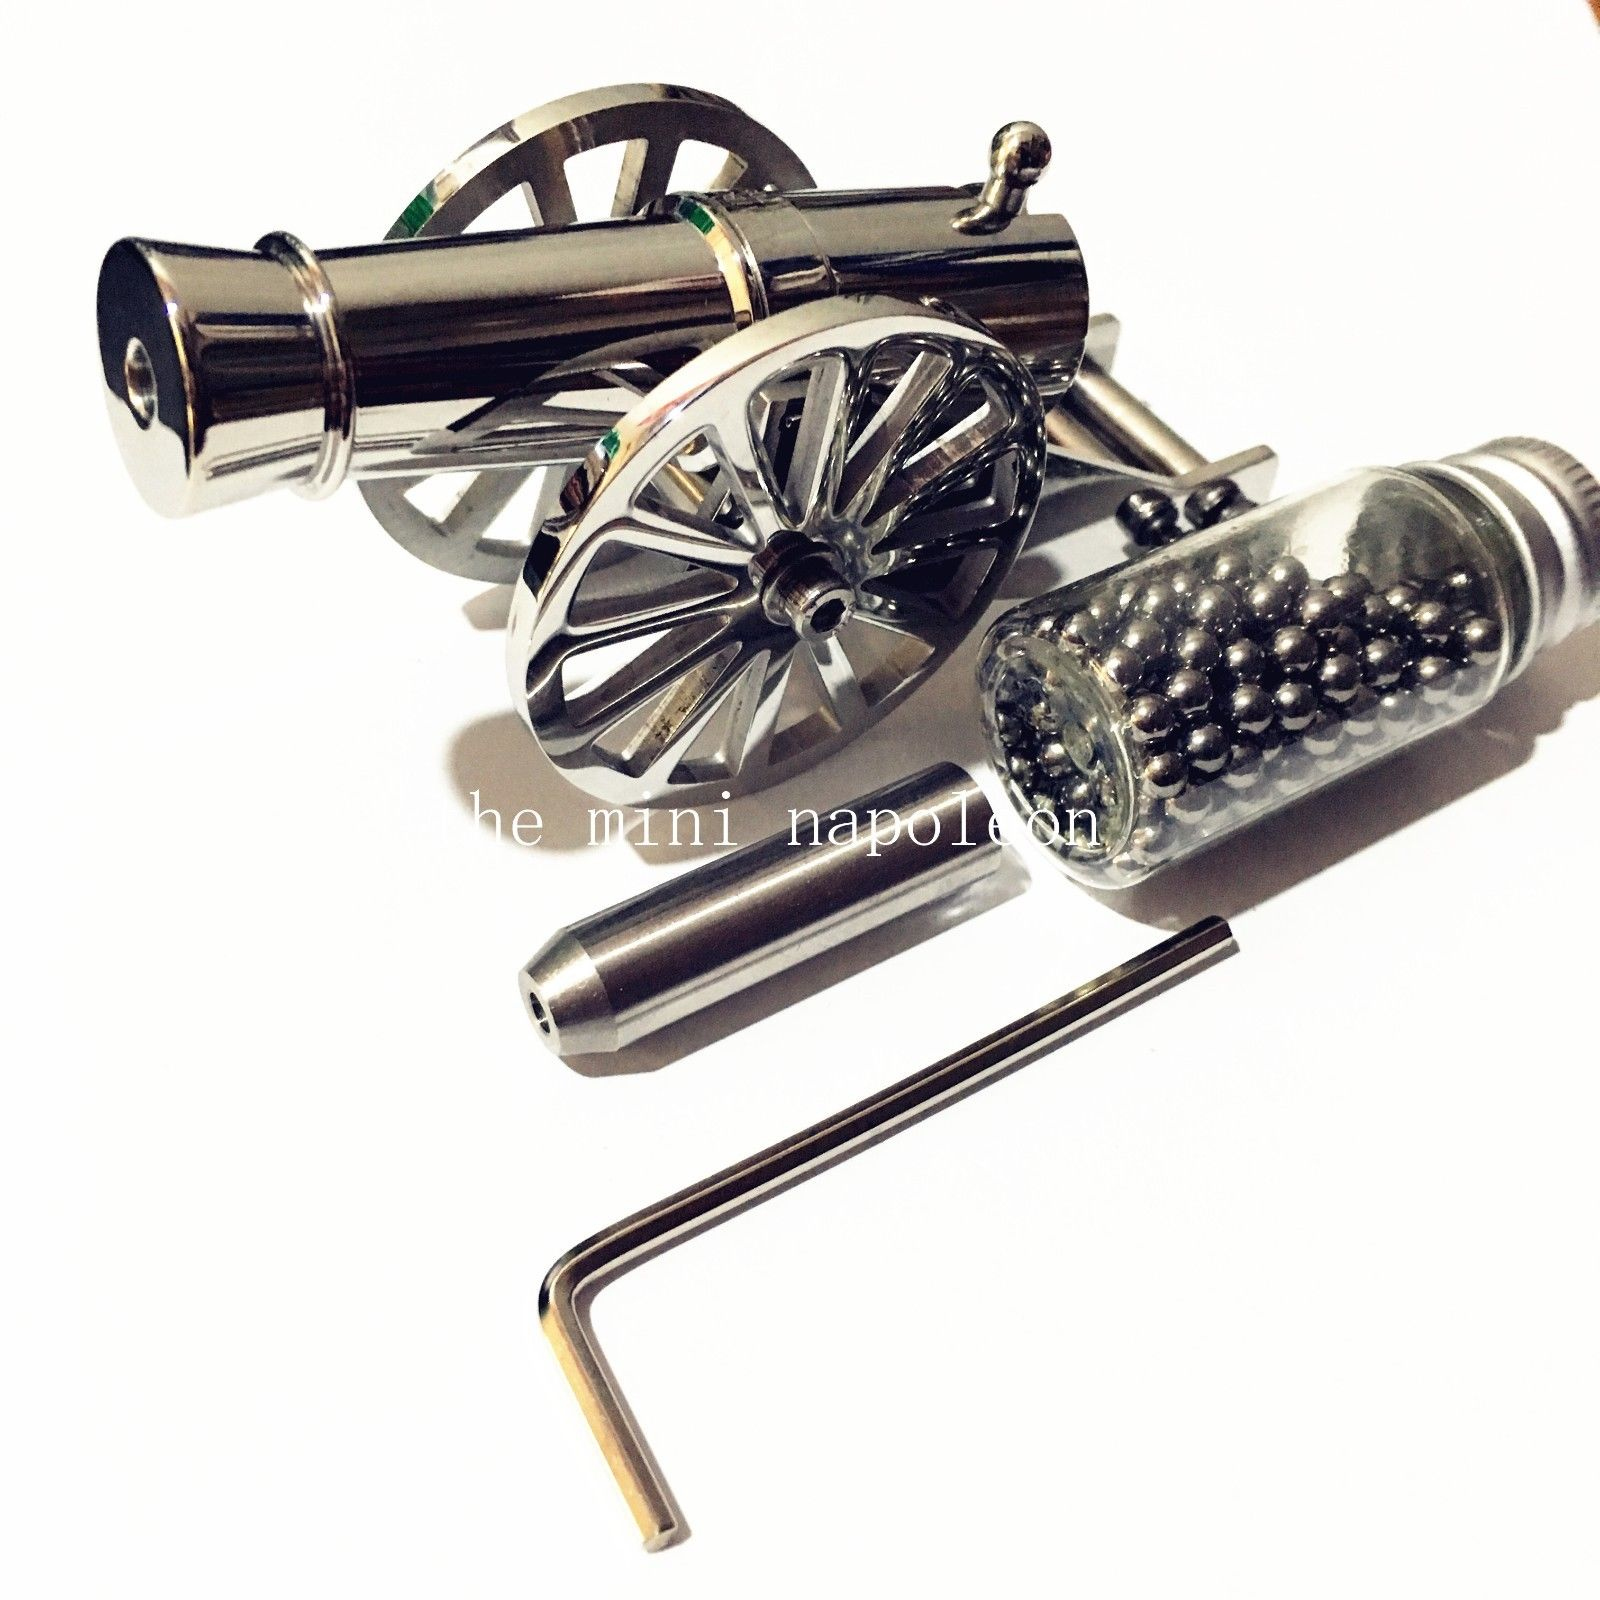 Classic Mini Warriors Napoleon Cannon mini cannon stainless steel model